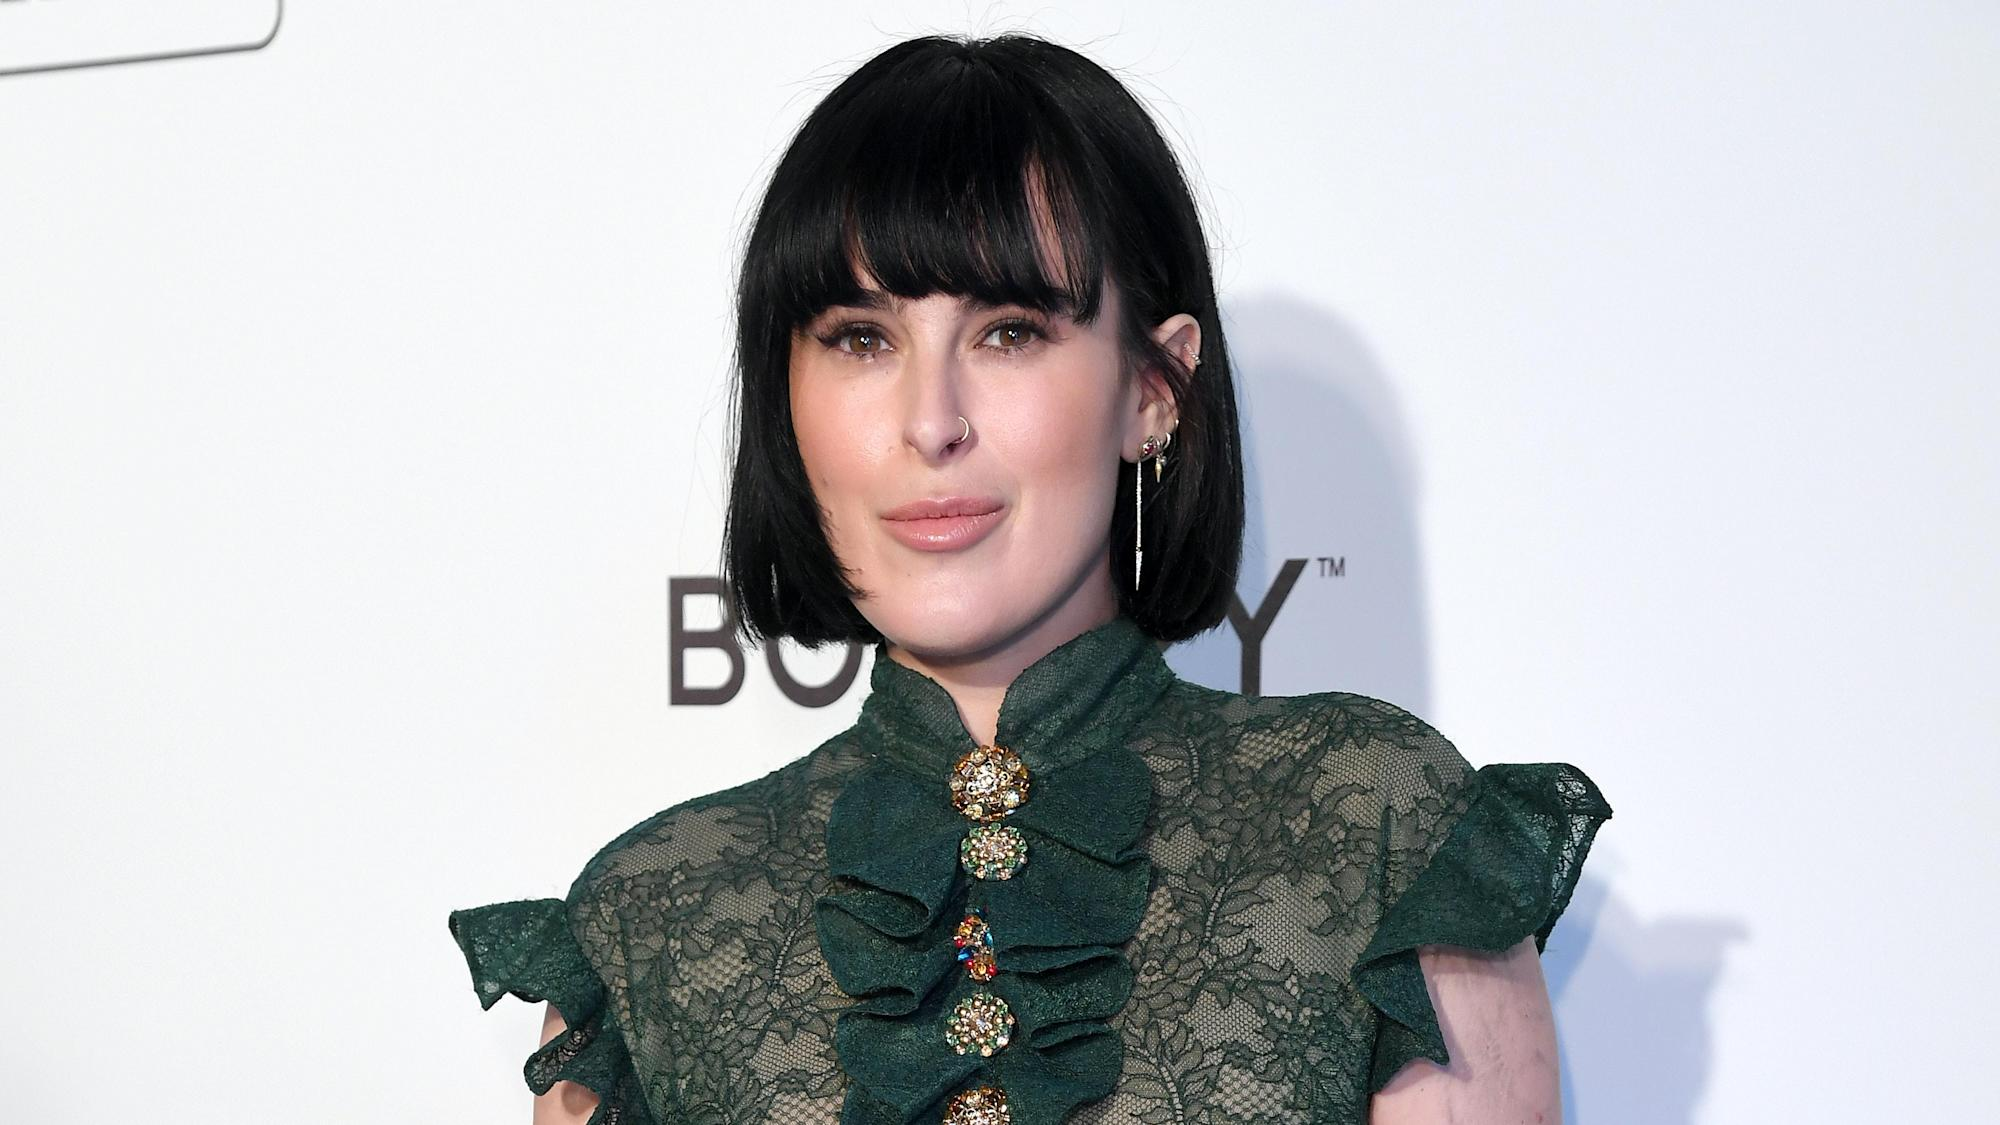 Rumer Willis urges fans to 'wear a damn mask' after Covid exposure